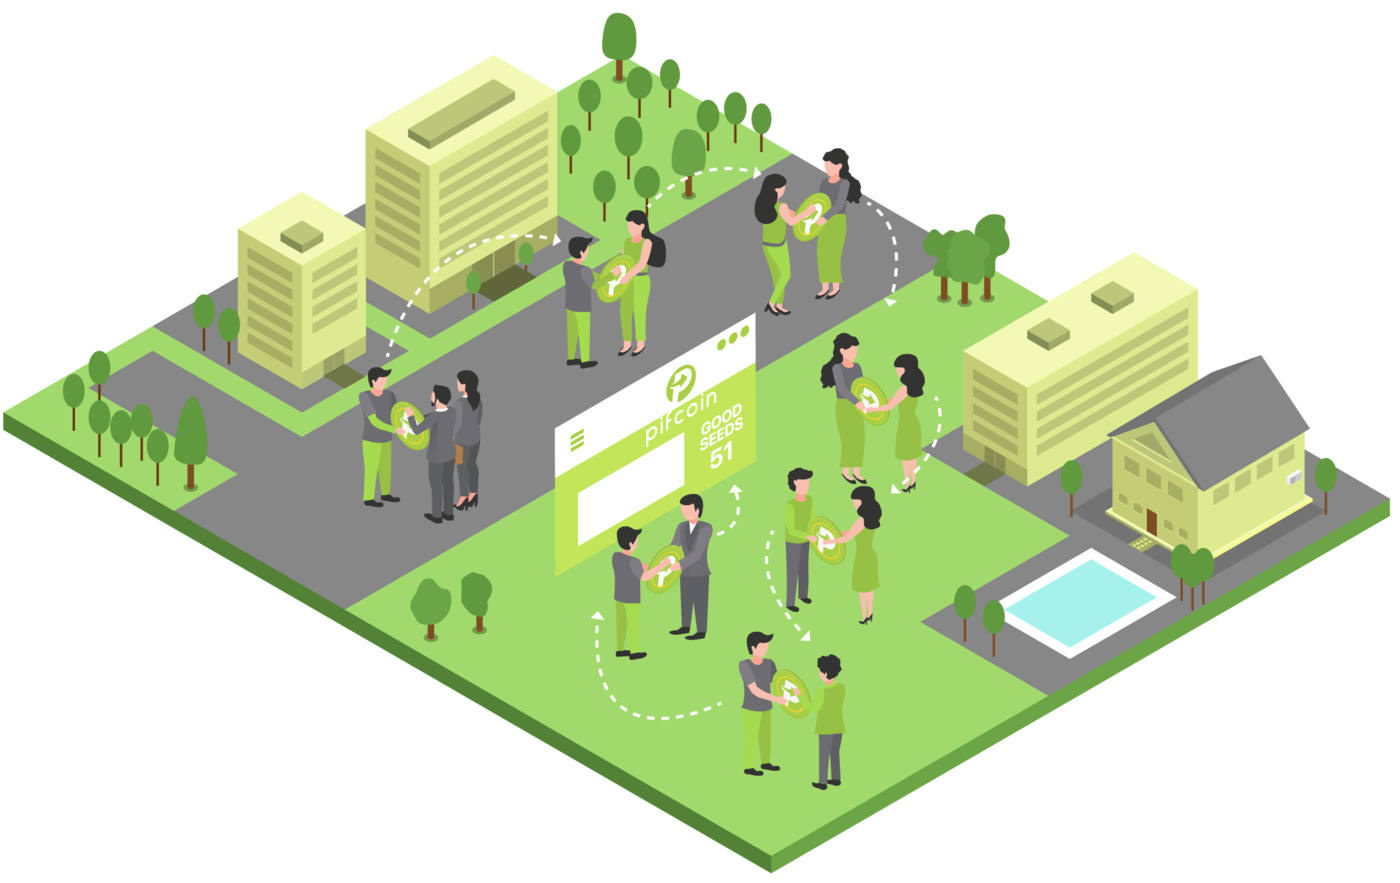 pifcoin-isometric